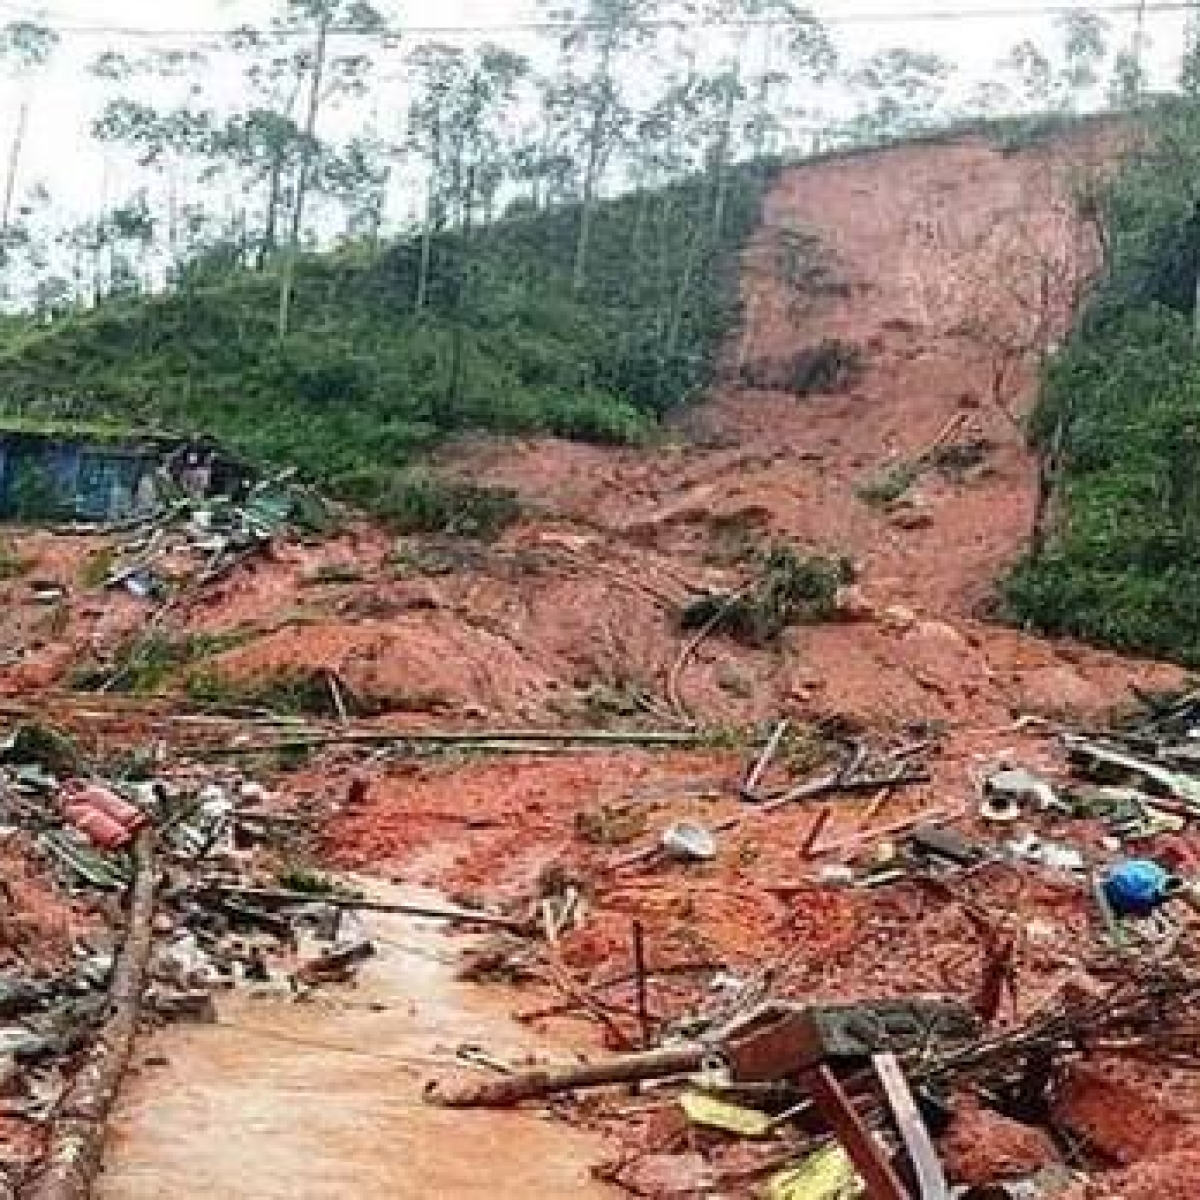 How to be prepared for landslide? NDMA releases list of do's and dont's - Check here now